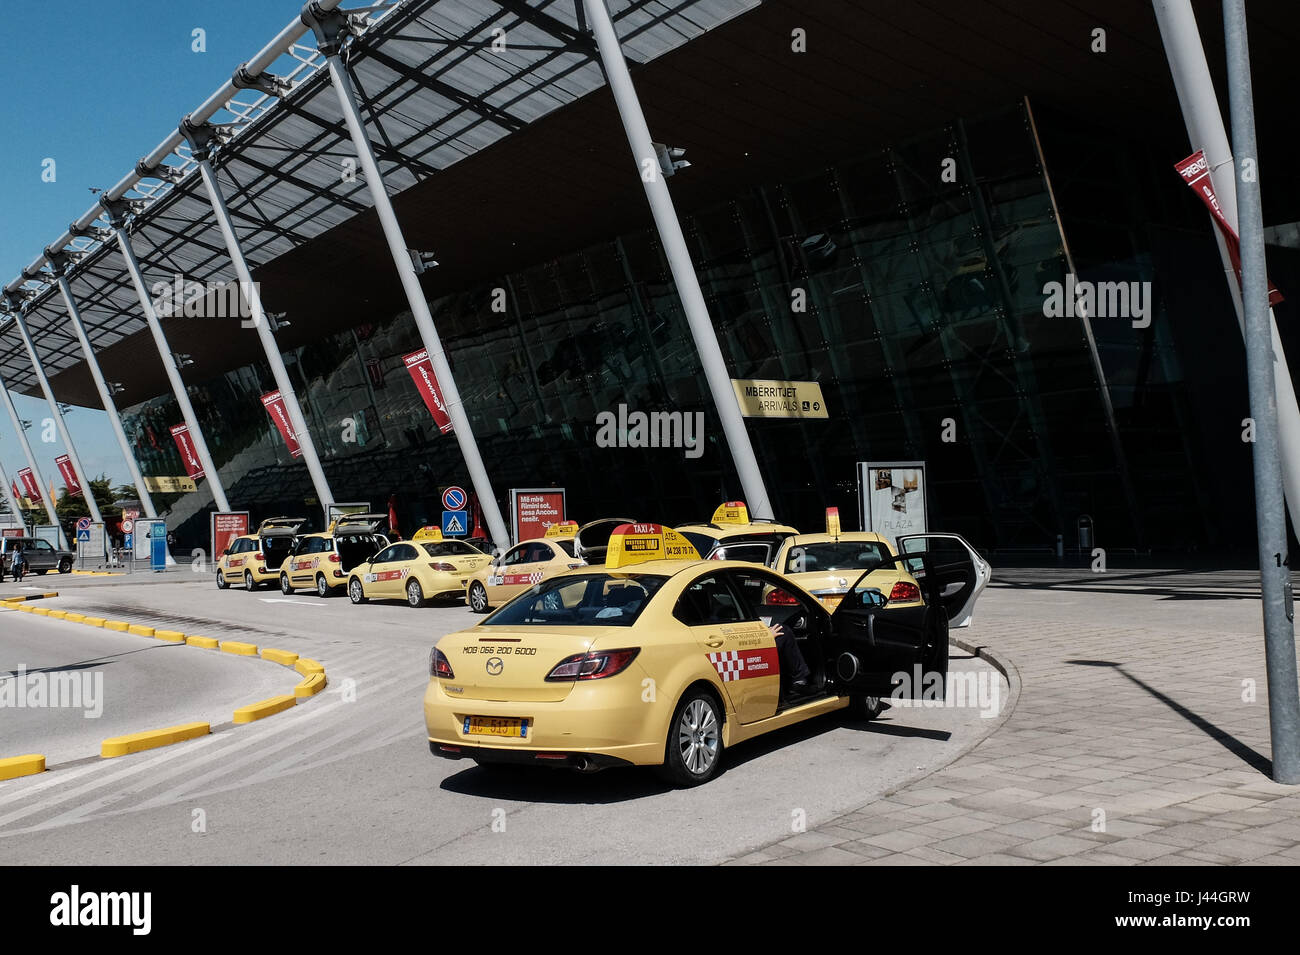 Taxis await passangers outside Tirana International Airport. Albania has a population of just over 3 million, only - Stock Image